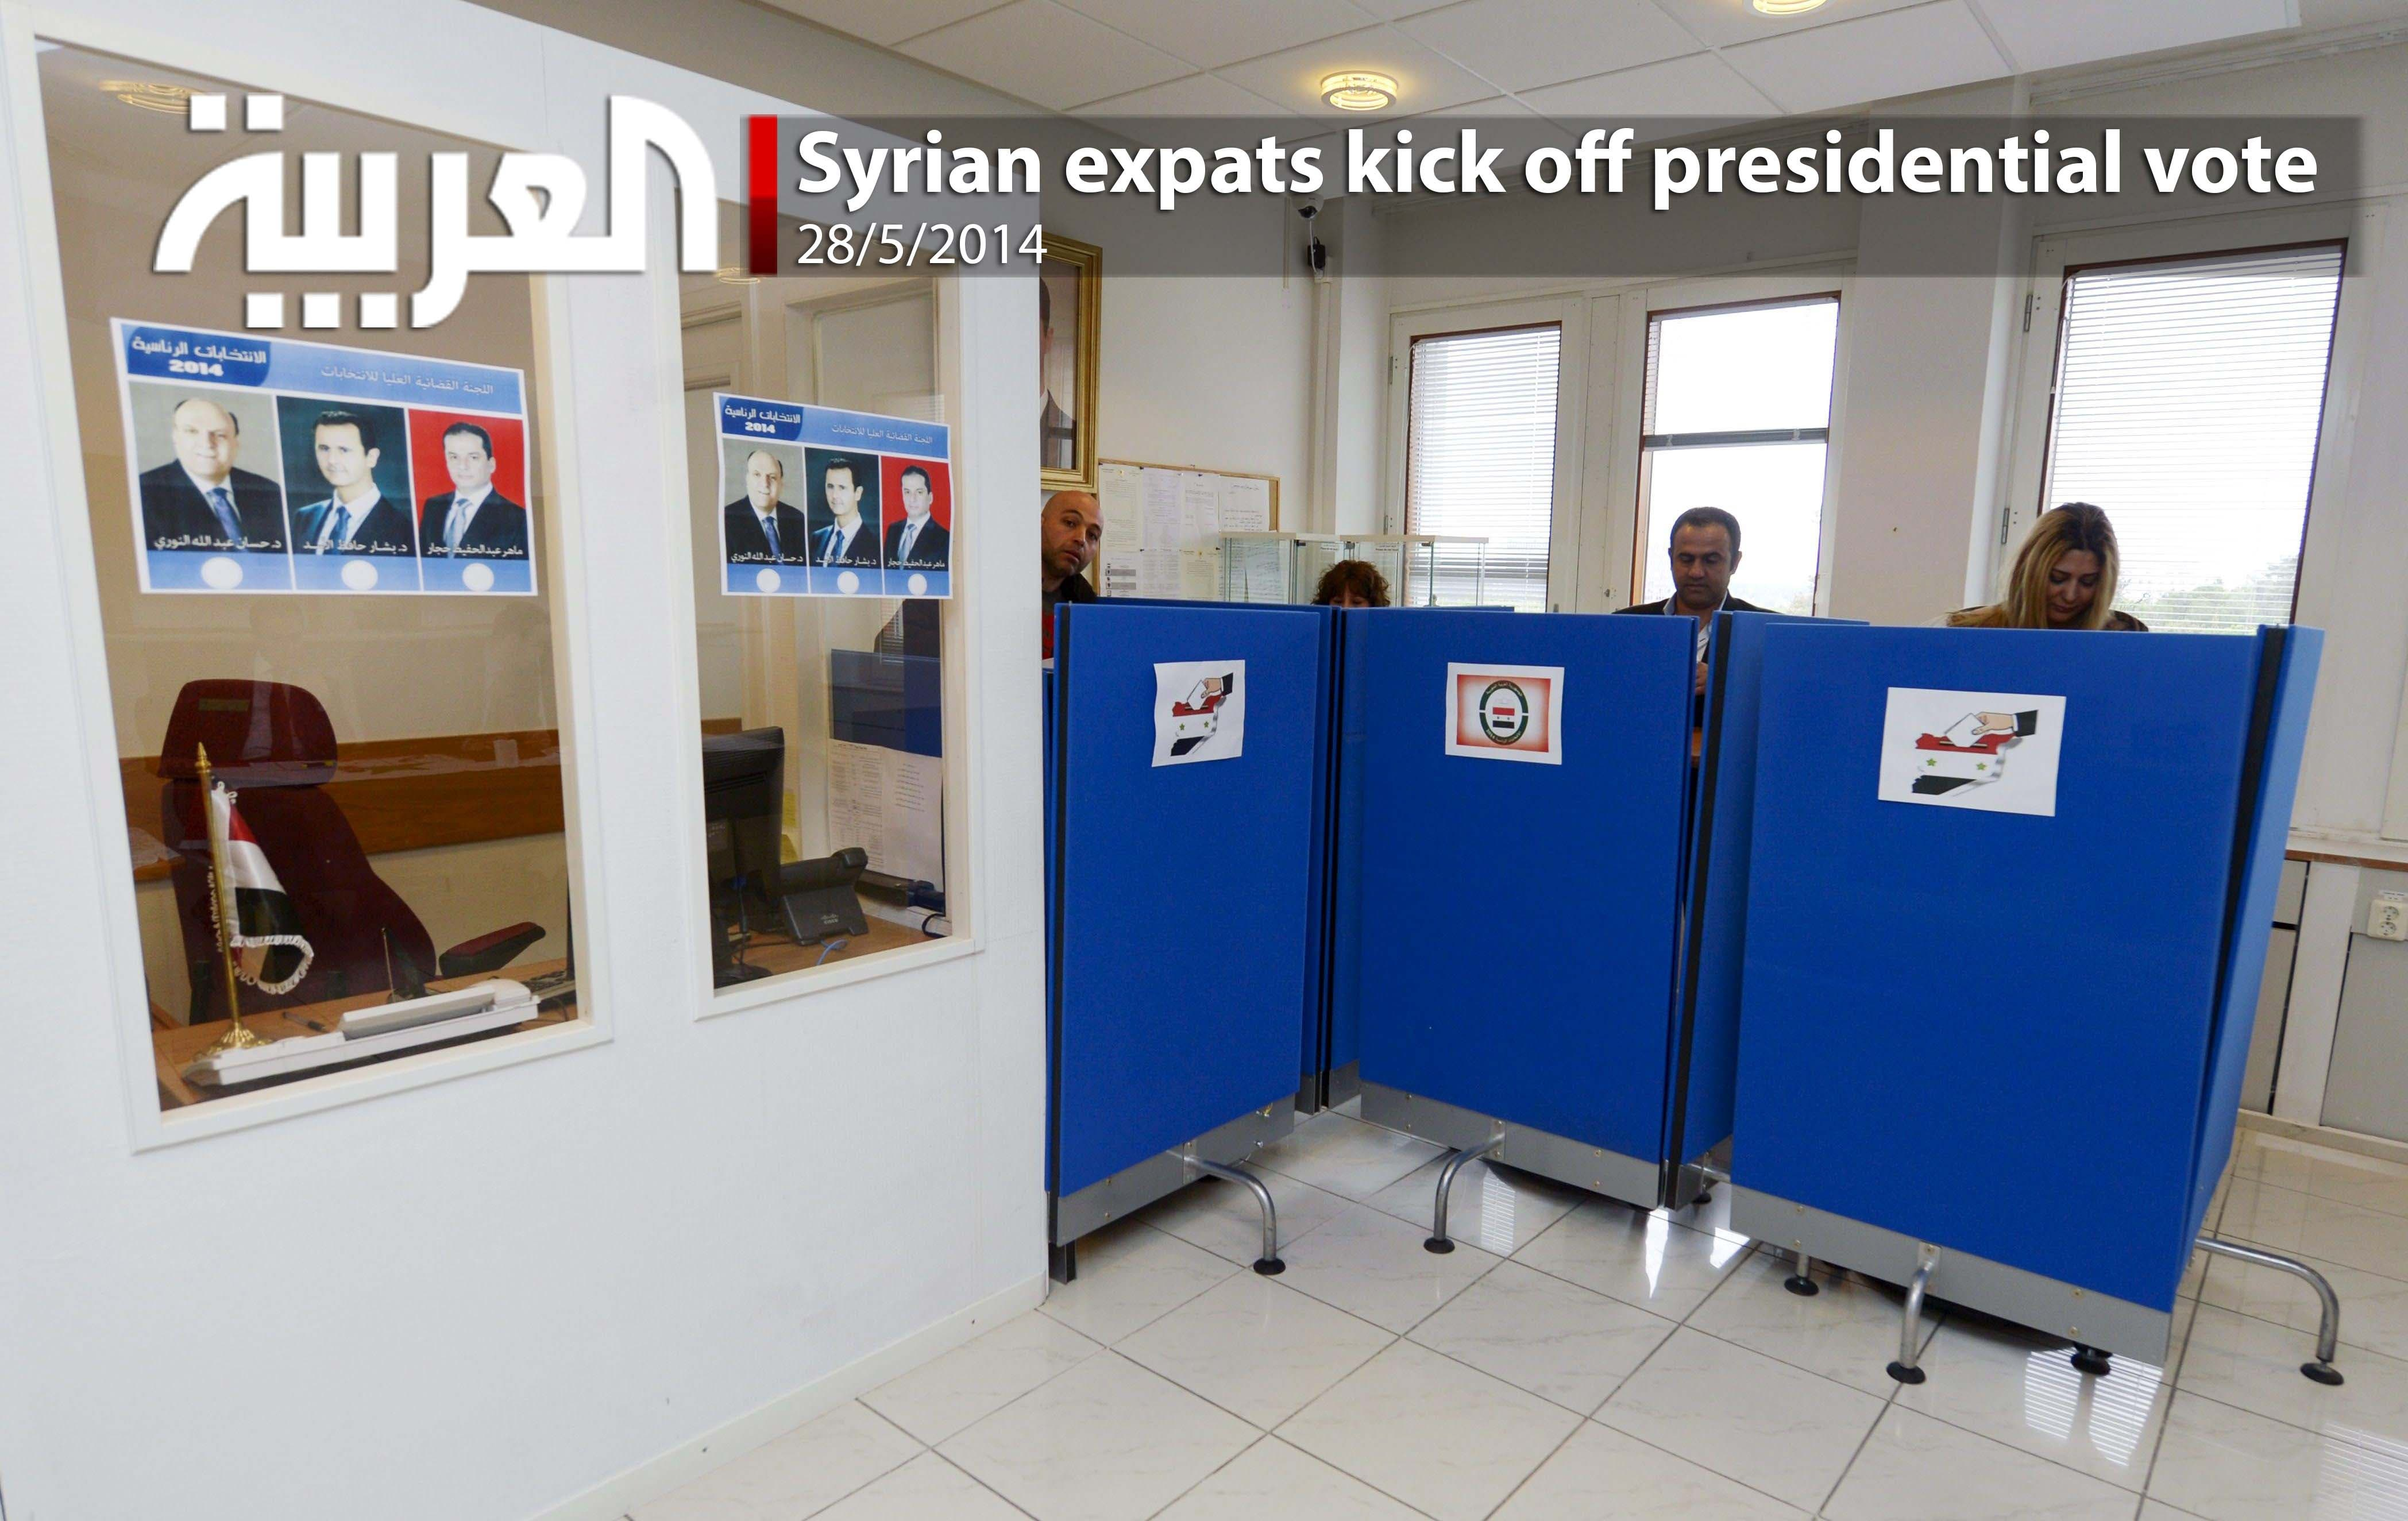 Syrian expats kick off presidential vote